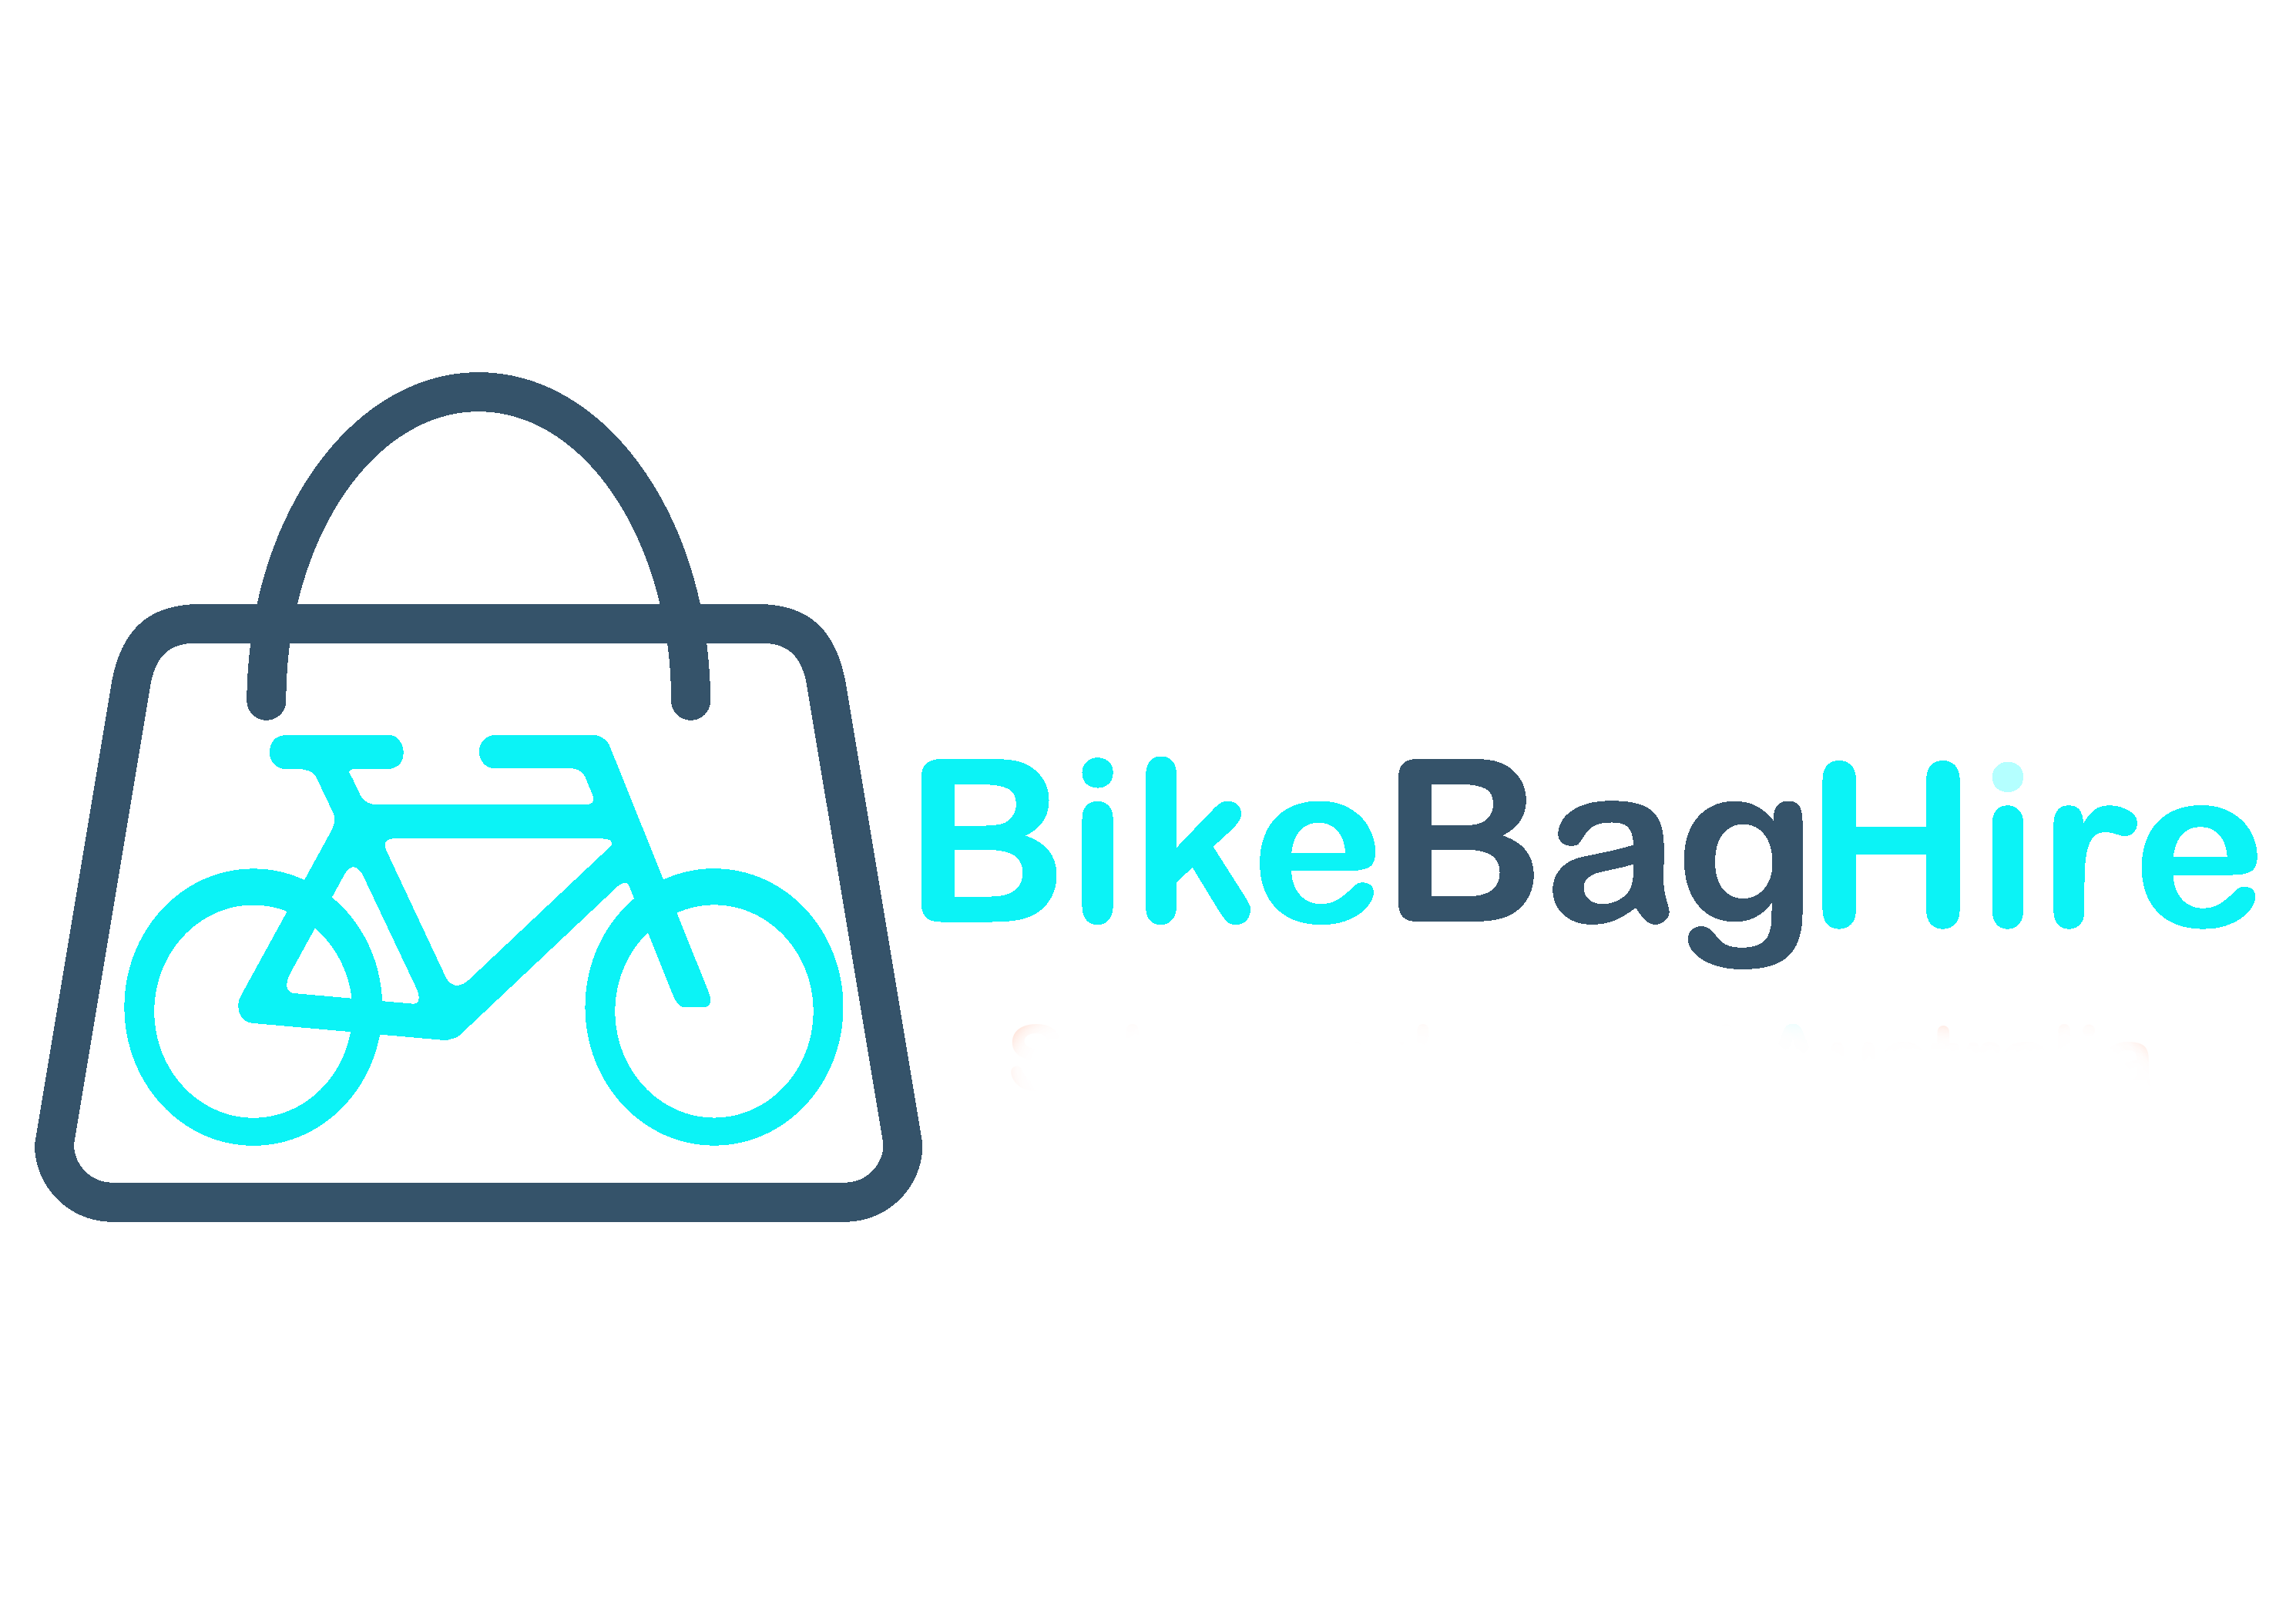 Bike Bag Hire